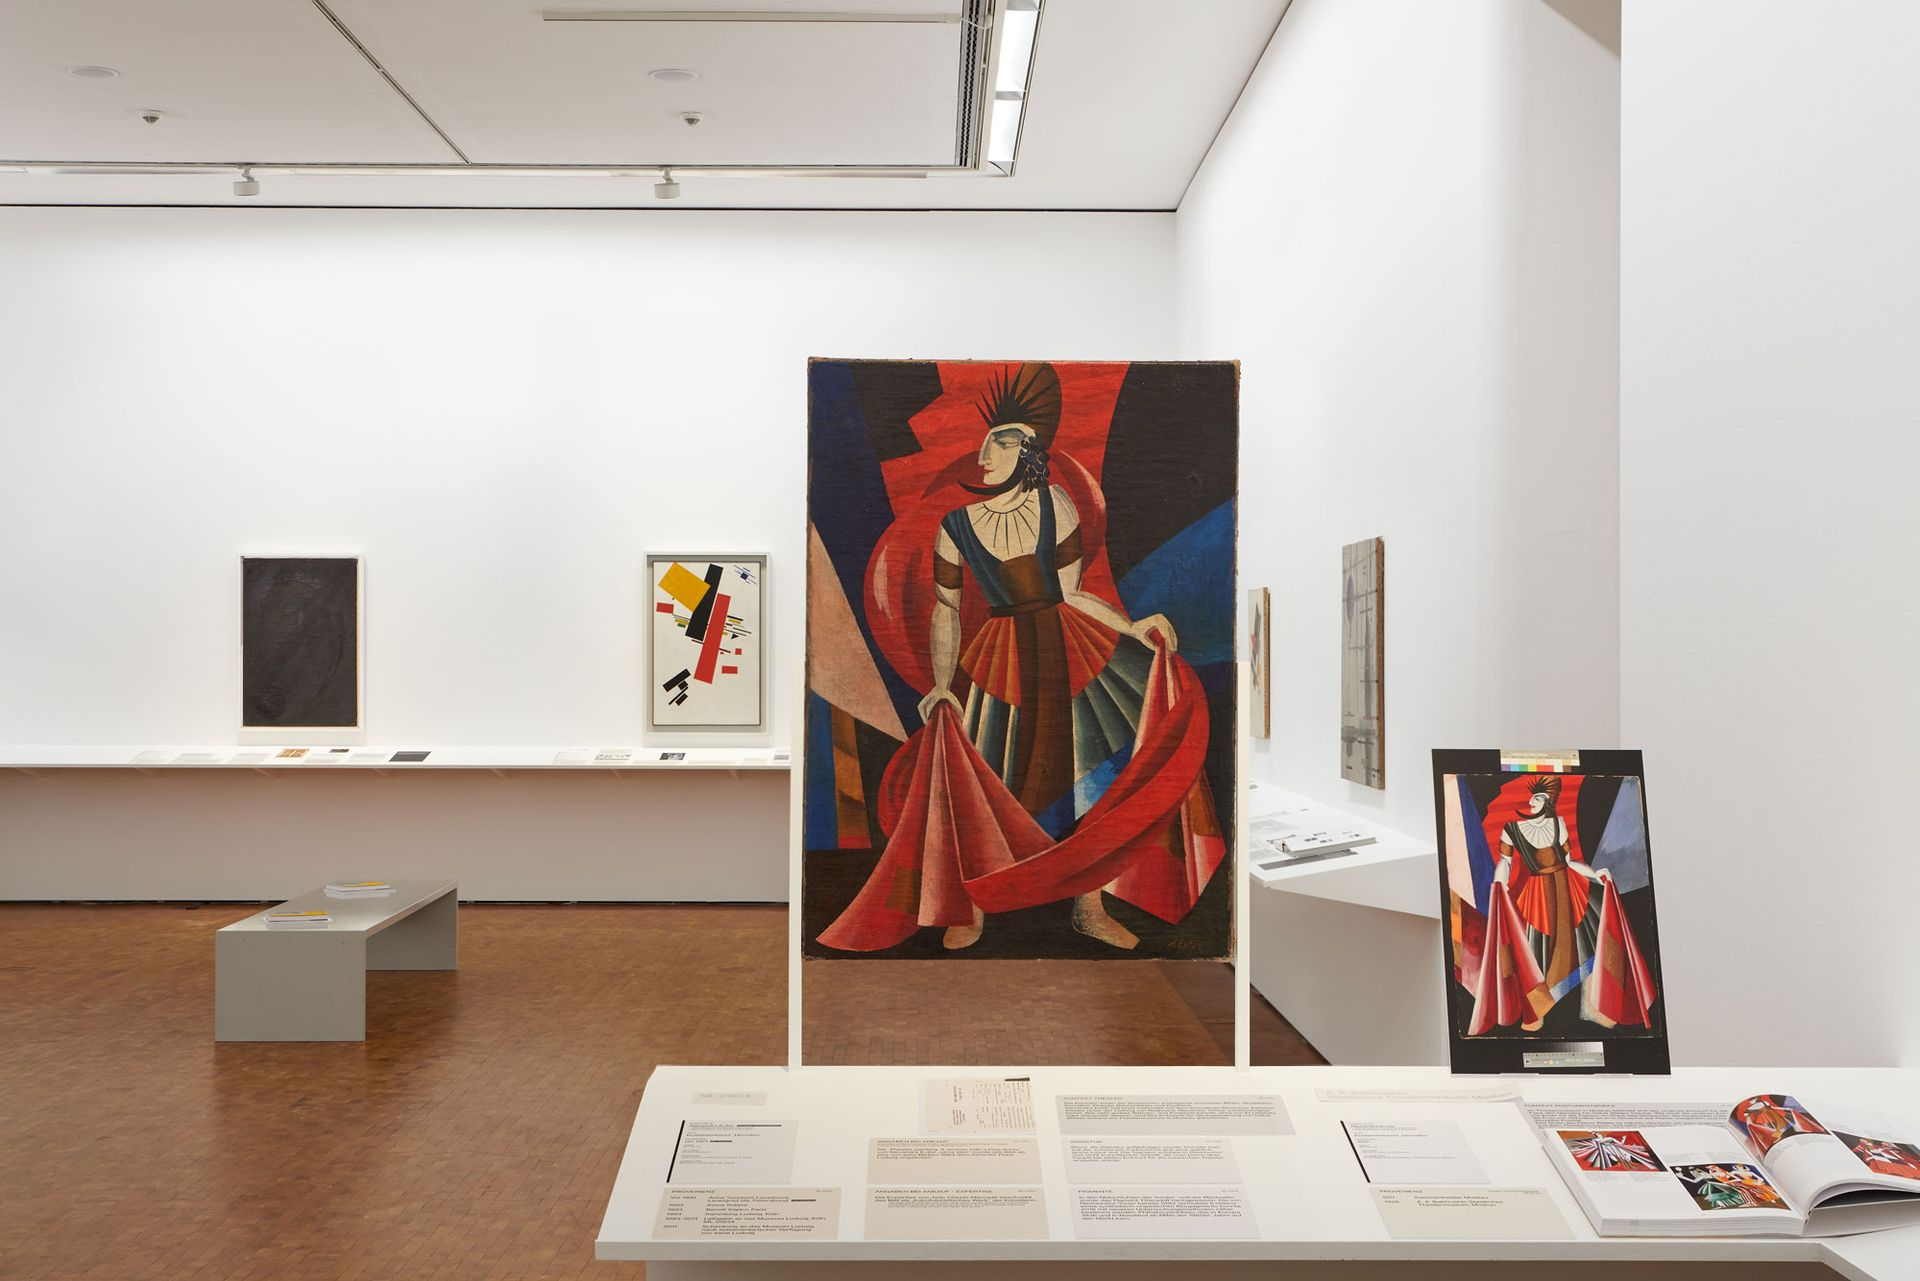 A new exhibition at the Museum Ludwig in Cologne sheds light on the prevalence of fake Russian avant-garde art works Photo: Rheinisches Bildarchiv Köln / Chrysant Scheewe